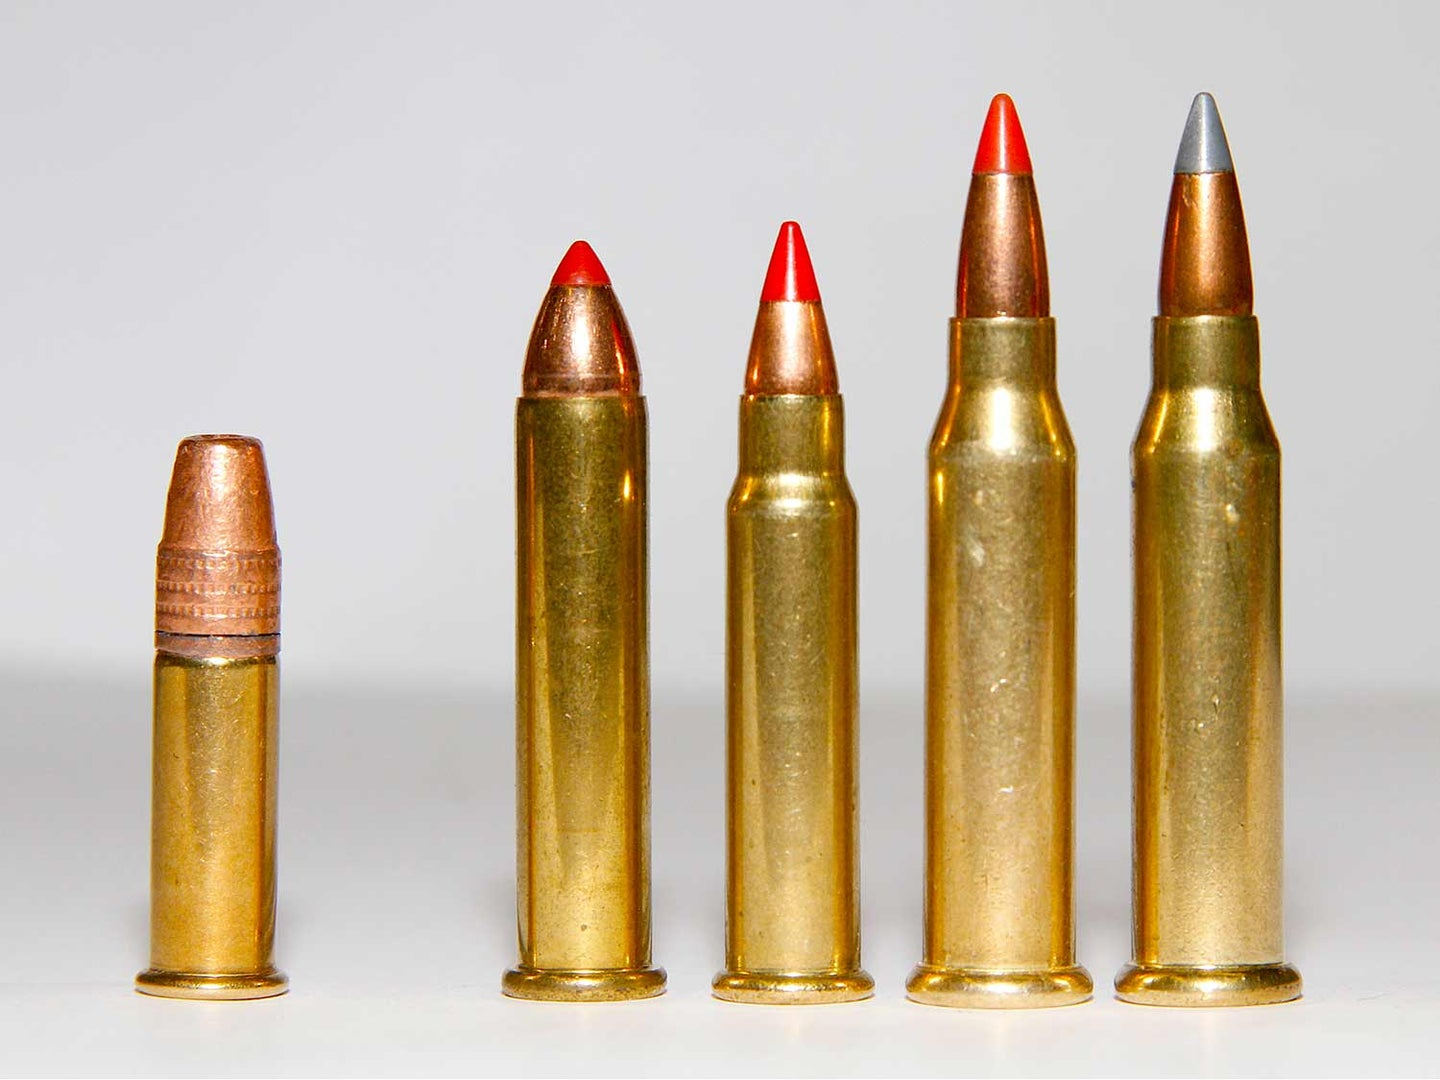 A lineup of .22 and .17 rimfire ammo bullets